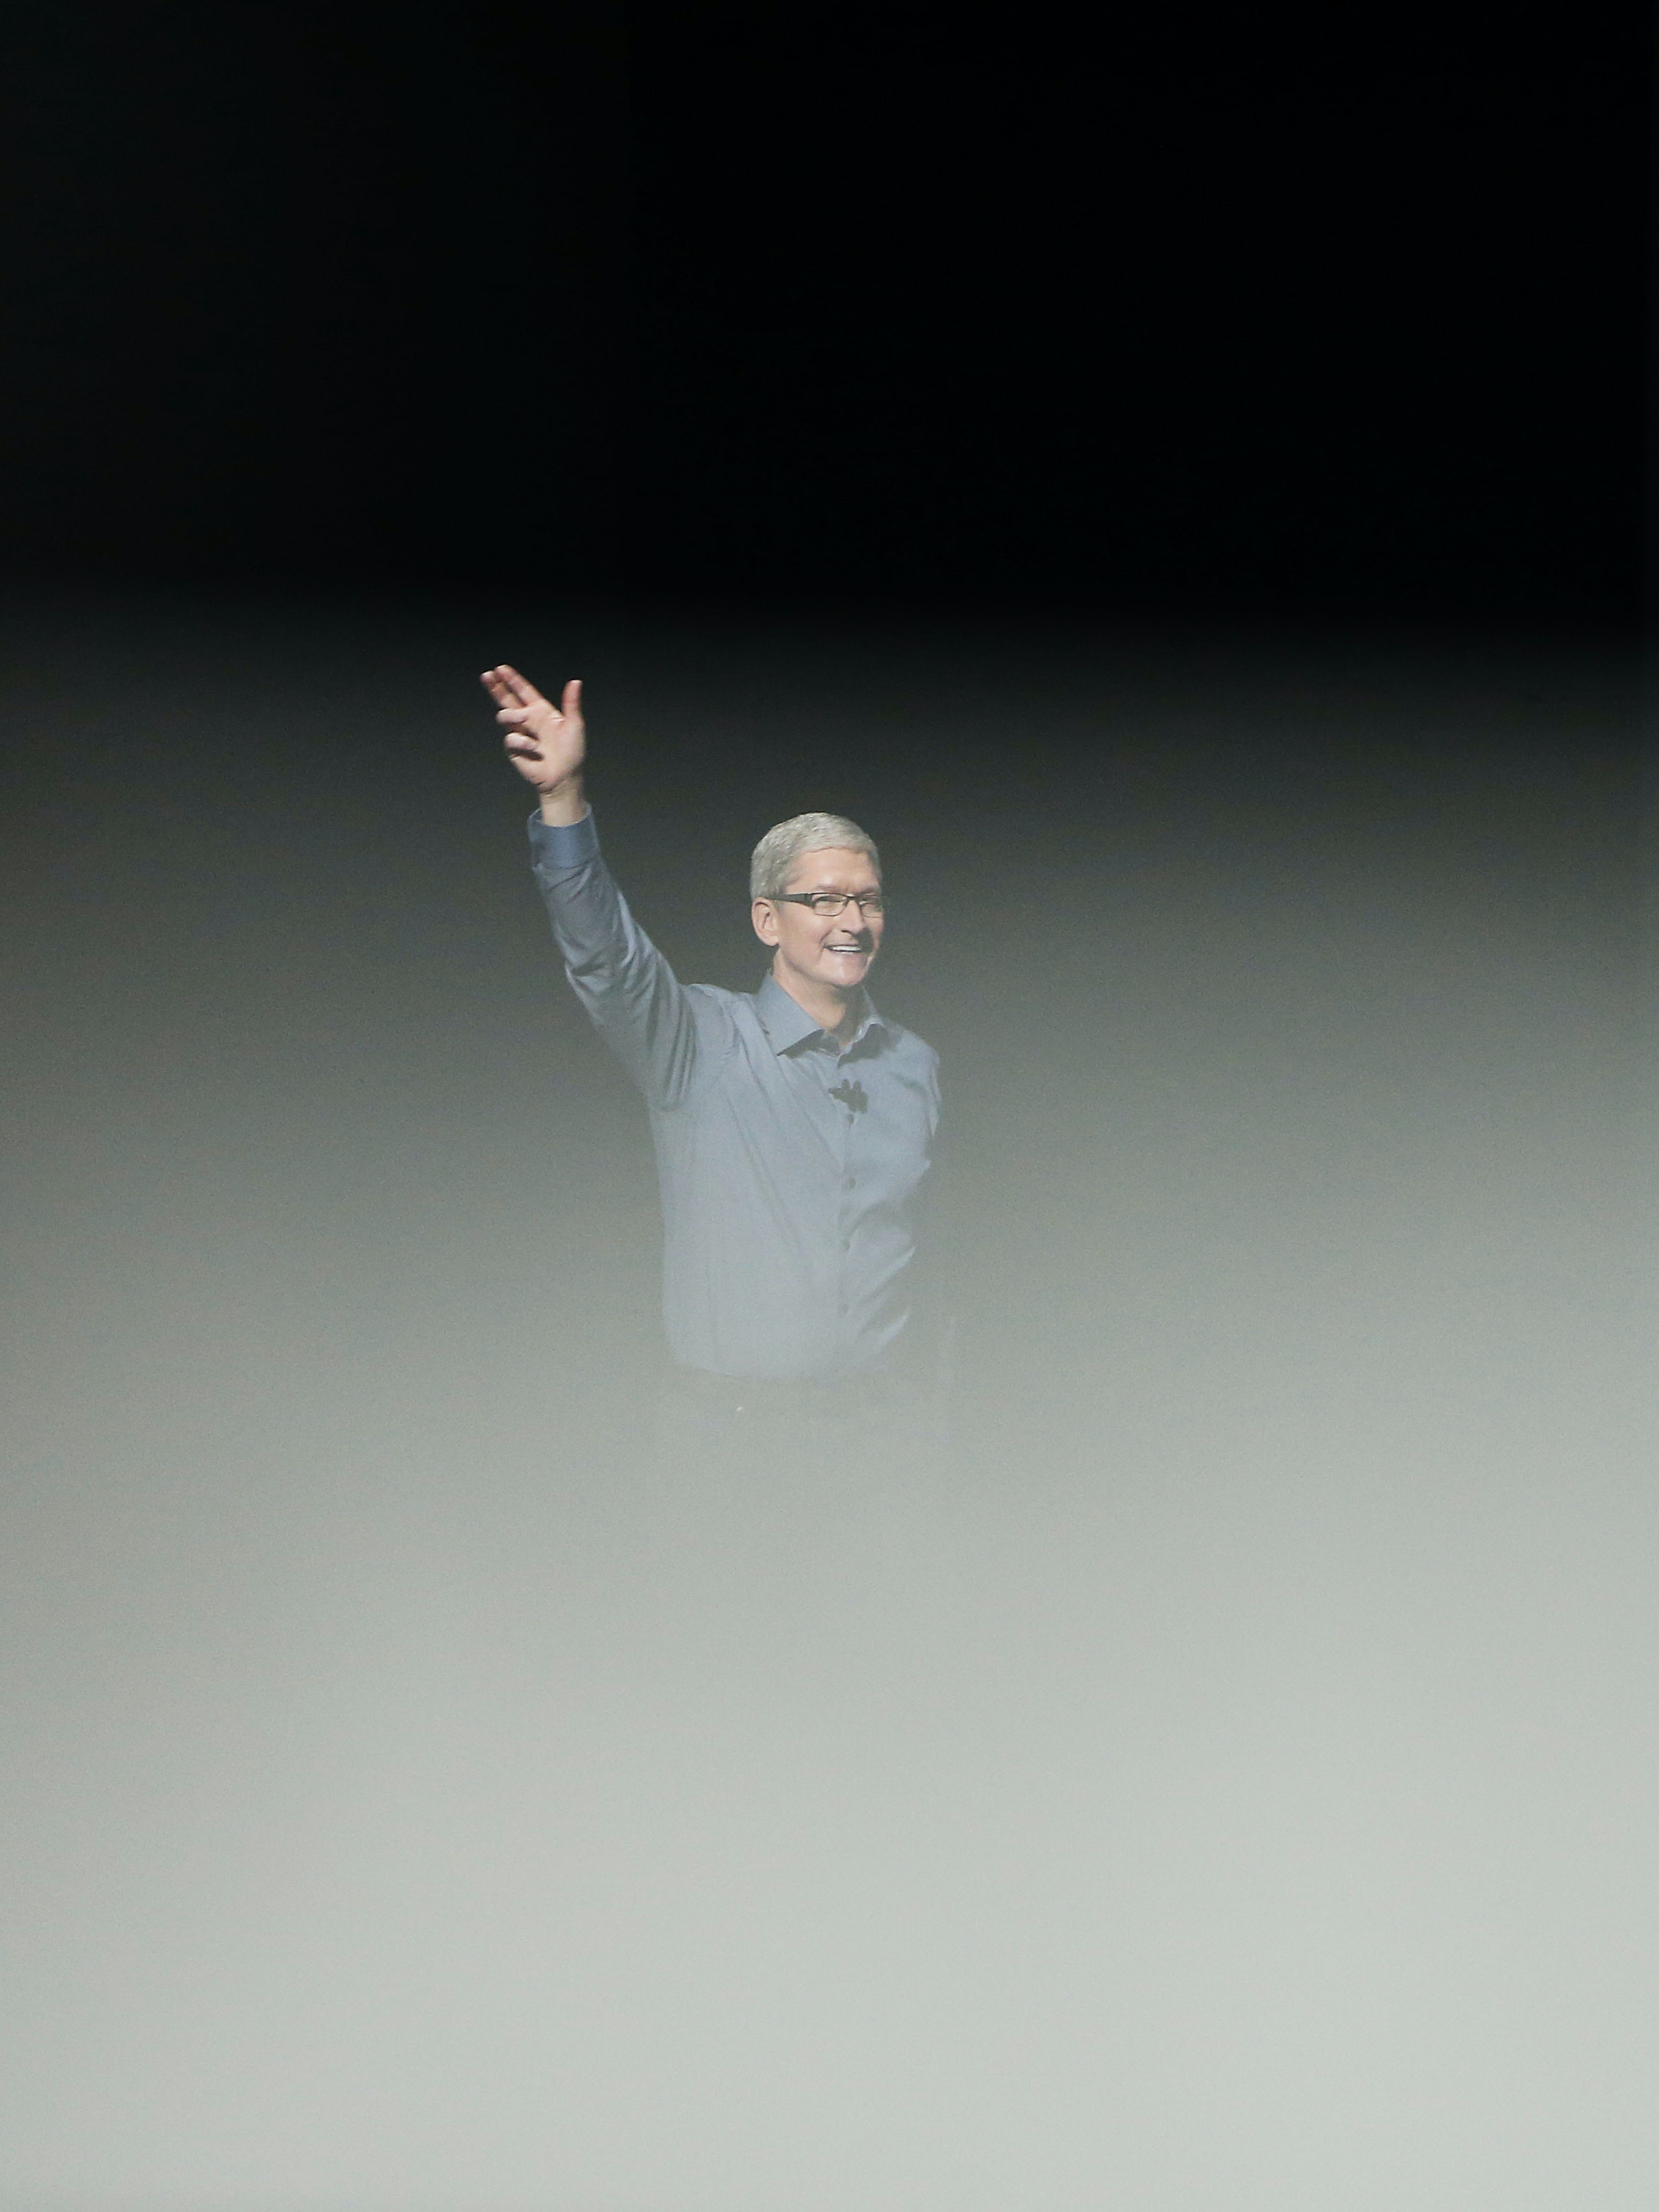 SAN FRANCISCO, CA - SEPTEMBER 9: Tim Cook waves as he arrive on stage during an Apple Special Event on at Bill Graham Civic Auditorium September 9, 2015 in San Francisco, California. Apple Inc. unveiled latest iterations of its smart phone, forecasted to be the 6S and 6S Plus and announced an update to its Apple TV set-top box. (Photo by Stephen Lam/ Getty Images)